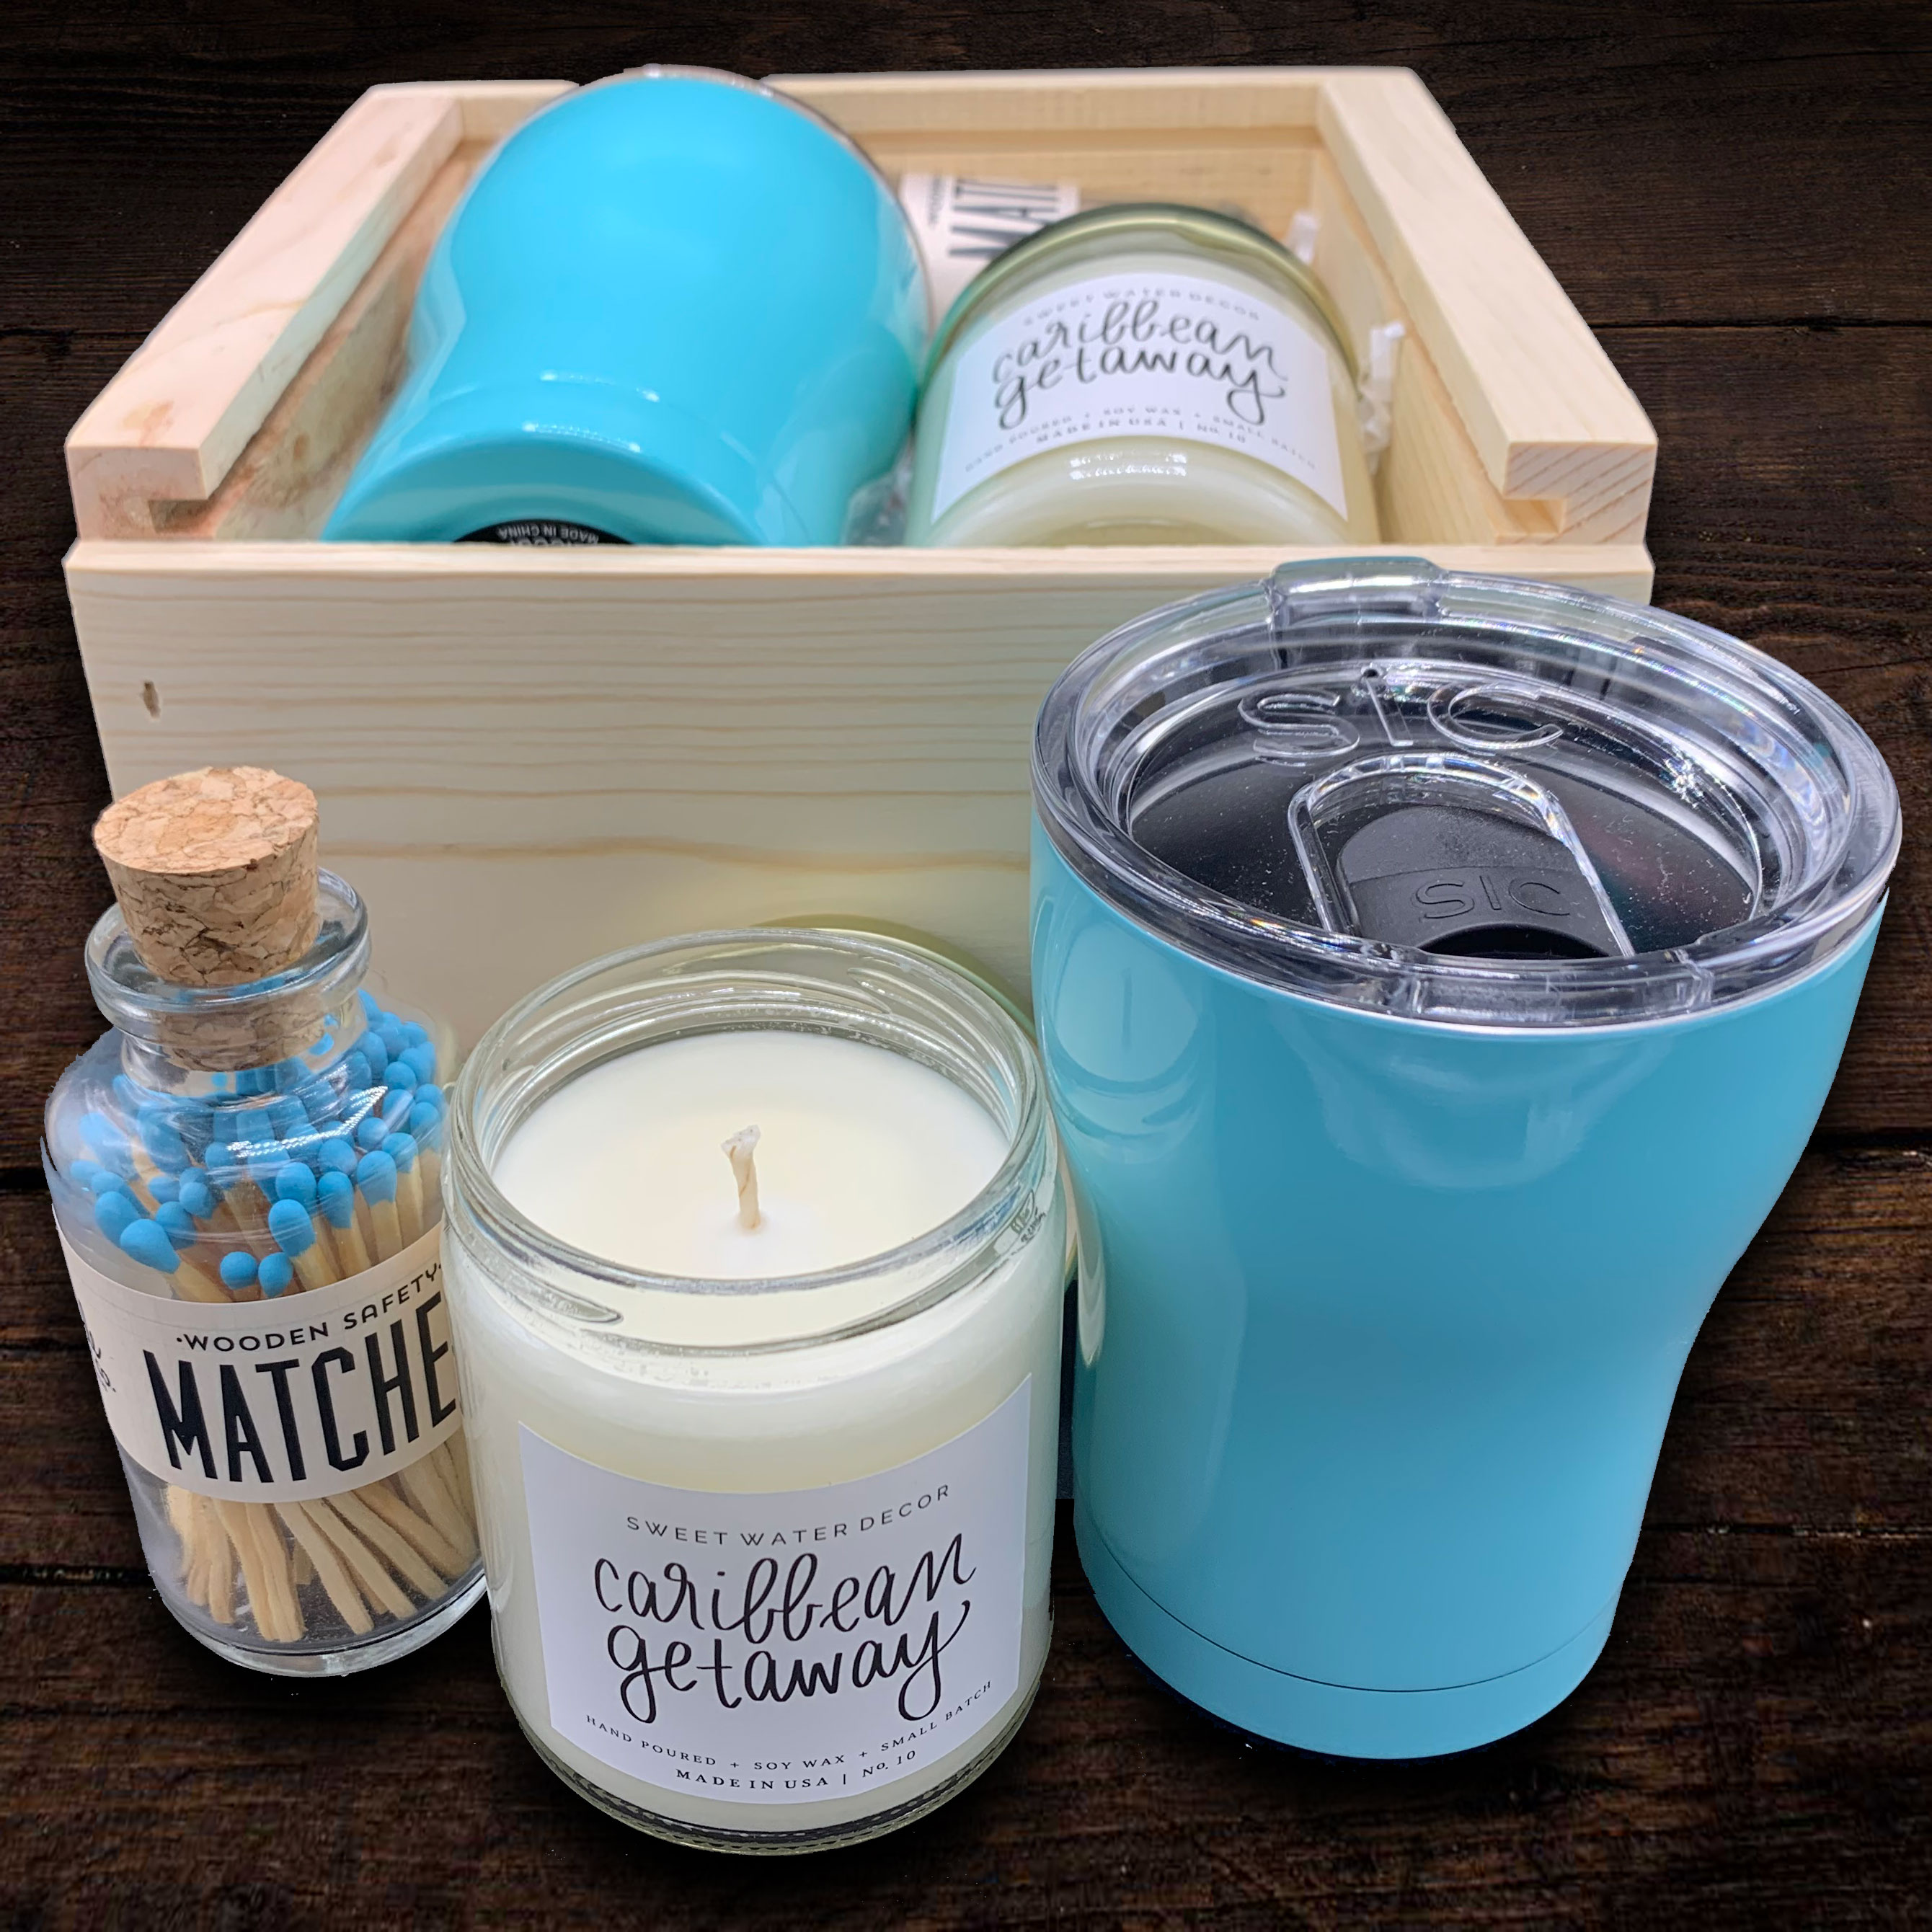 Fun-sized blue matches fill this vintage glass jar with cork lid.  This match bottle is not only fun